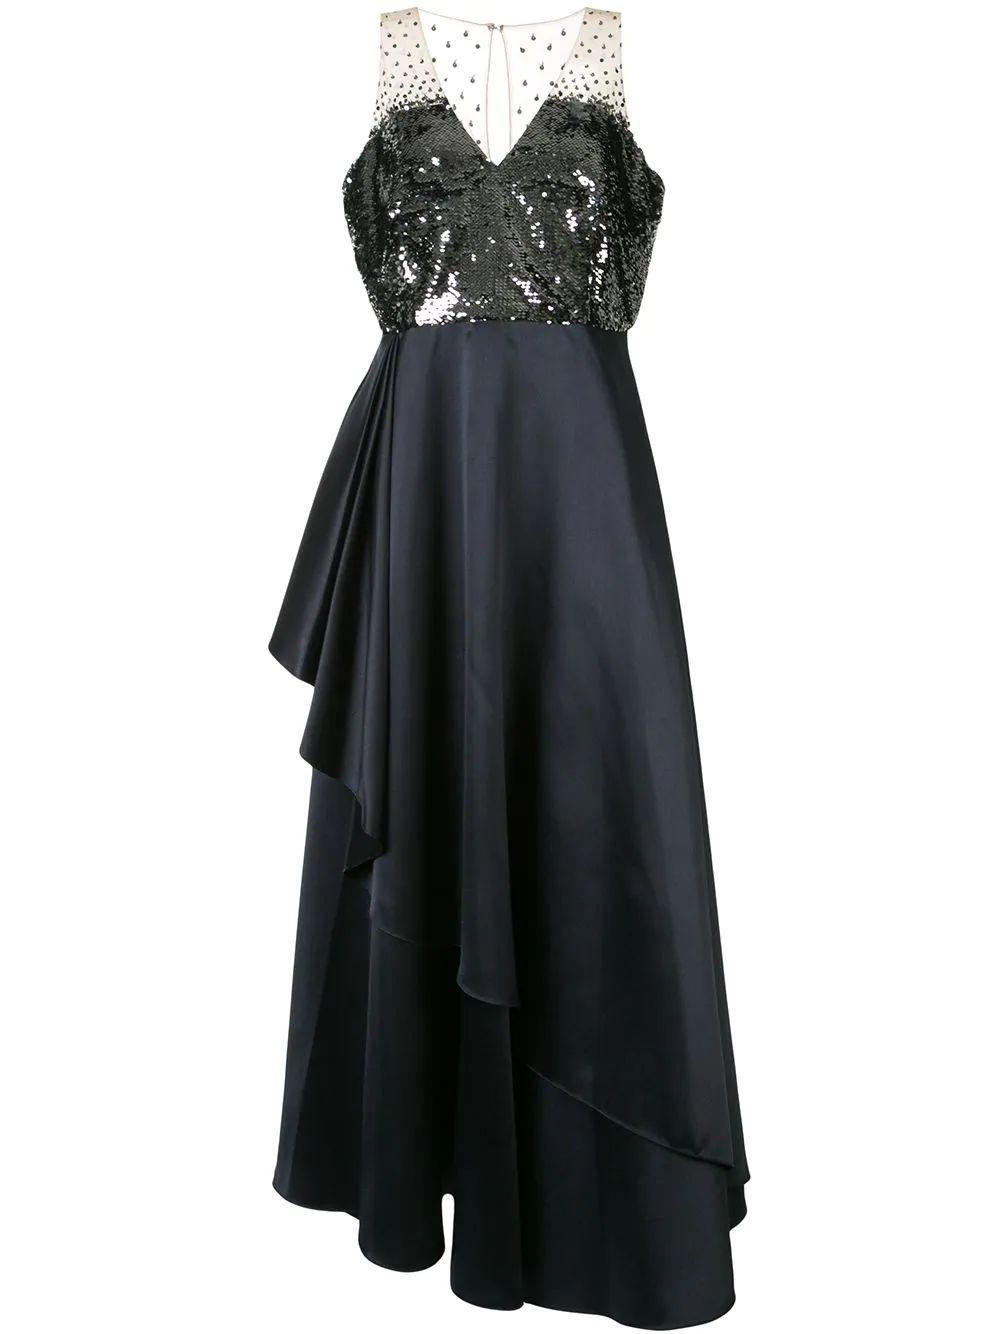 Teagan Sequin Ball Gown